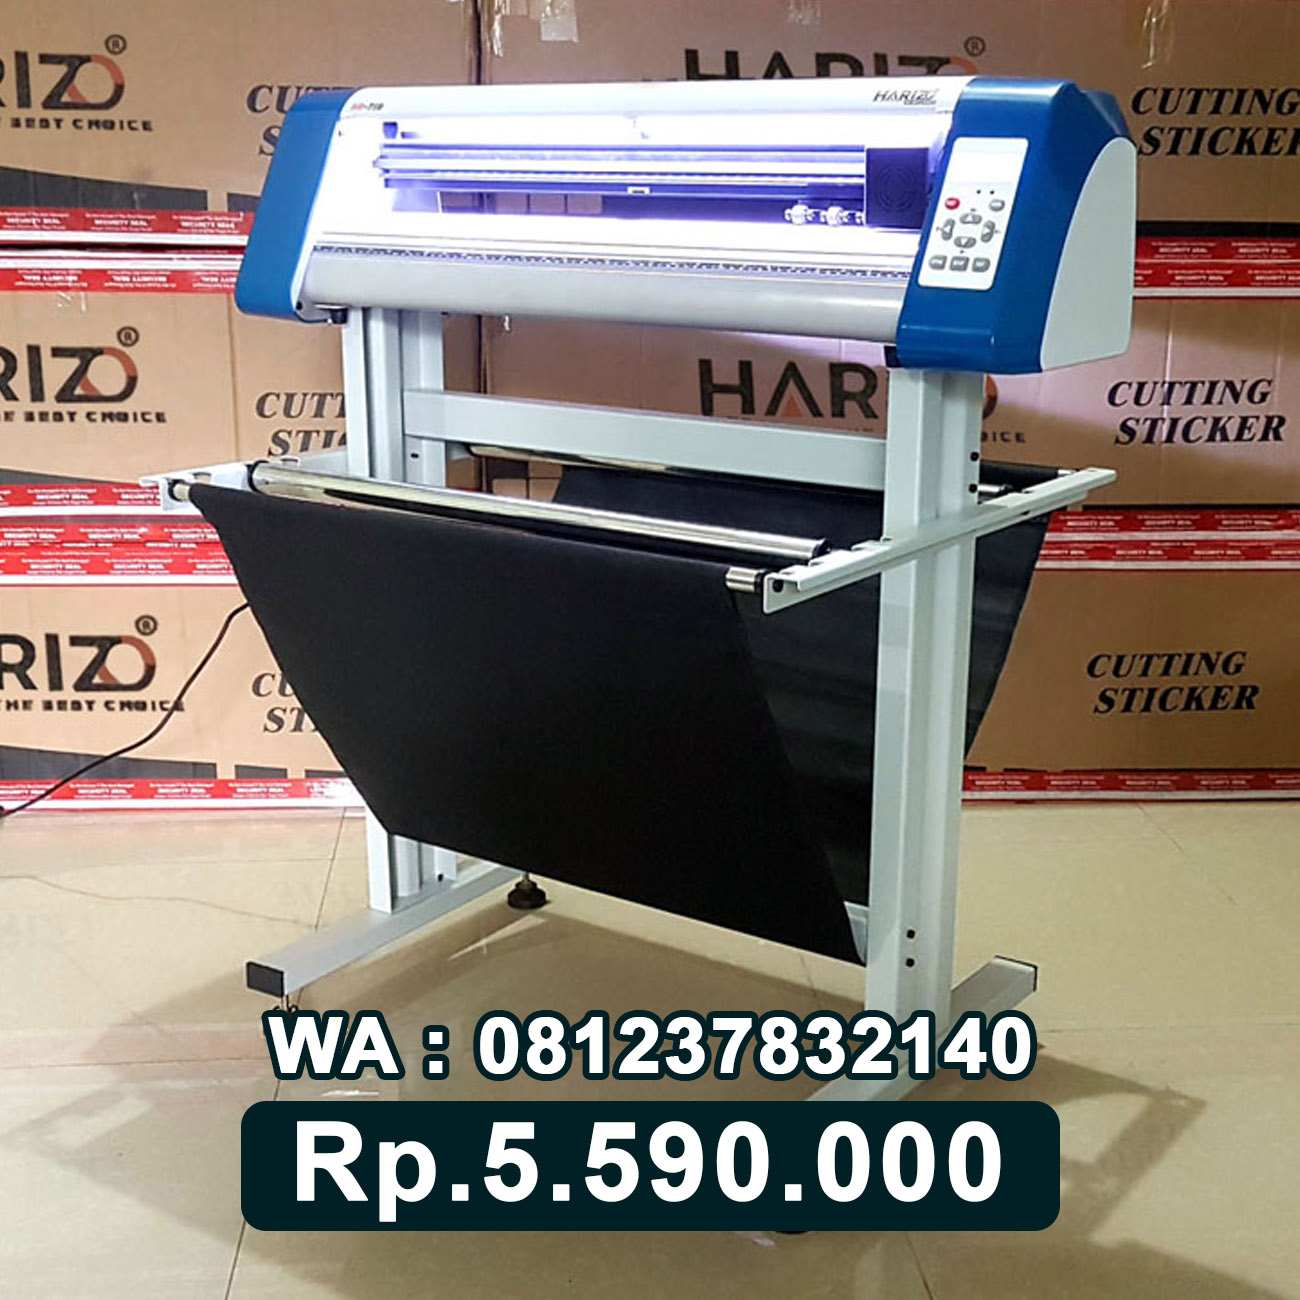 JUAL MESIN CUTTING STICKER HARIZO 720 Tarakan